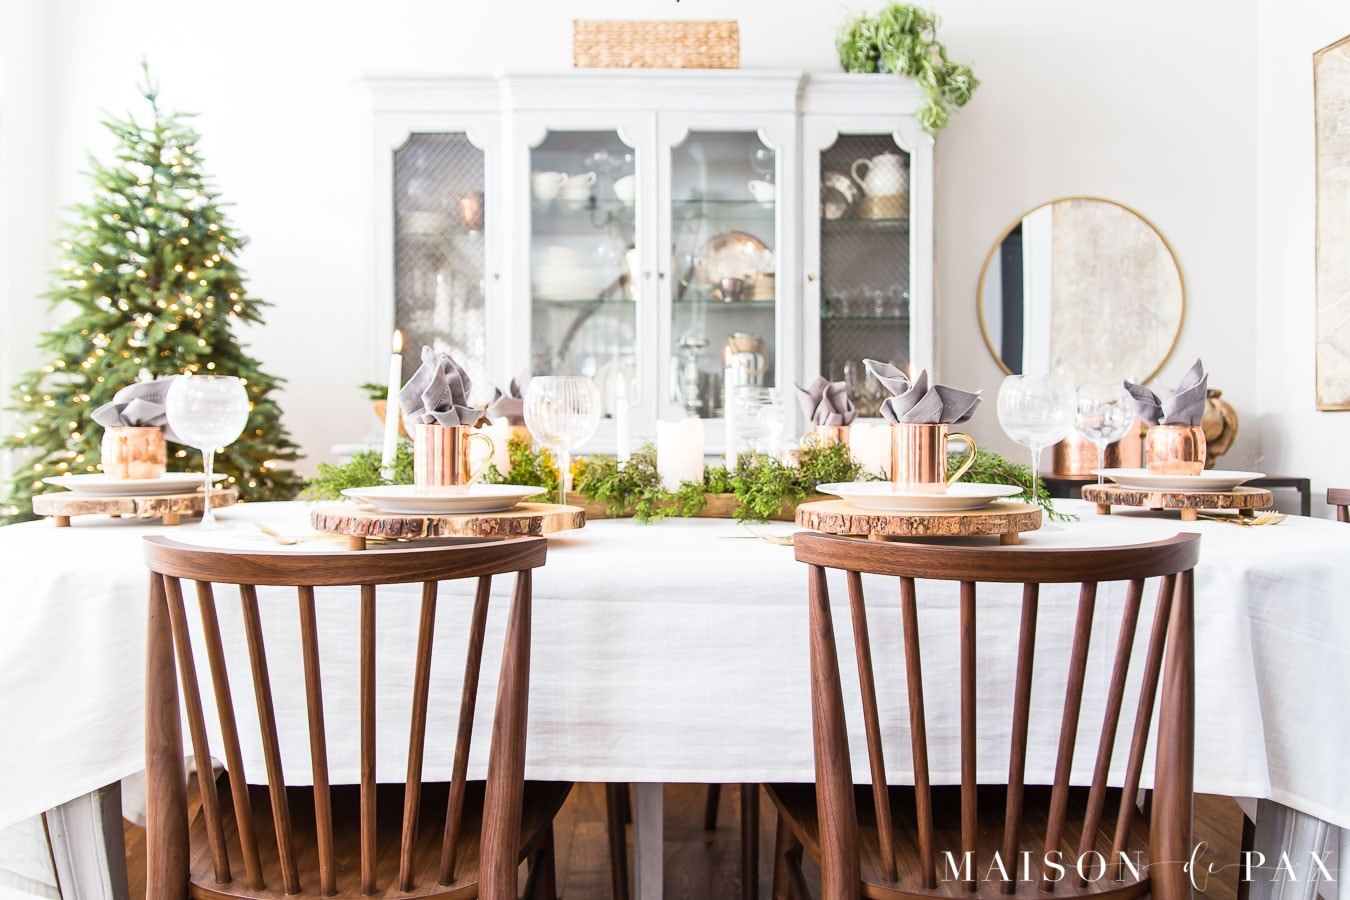 brown wood rung modern farmhouse chairs at a dining table with a white tablecoth